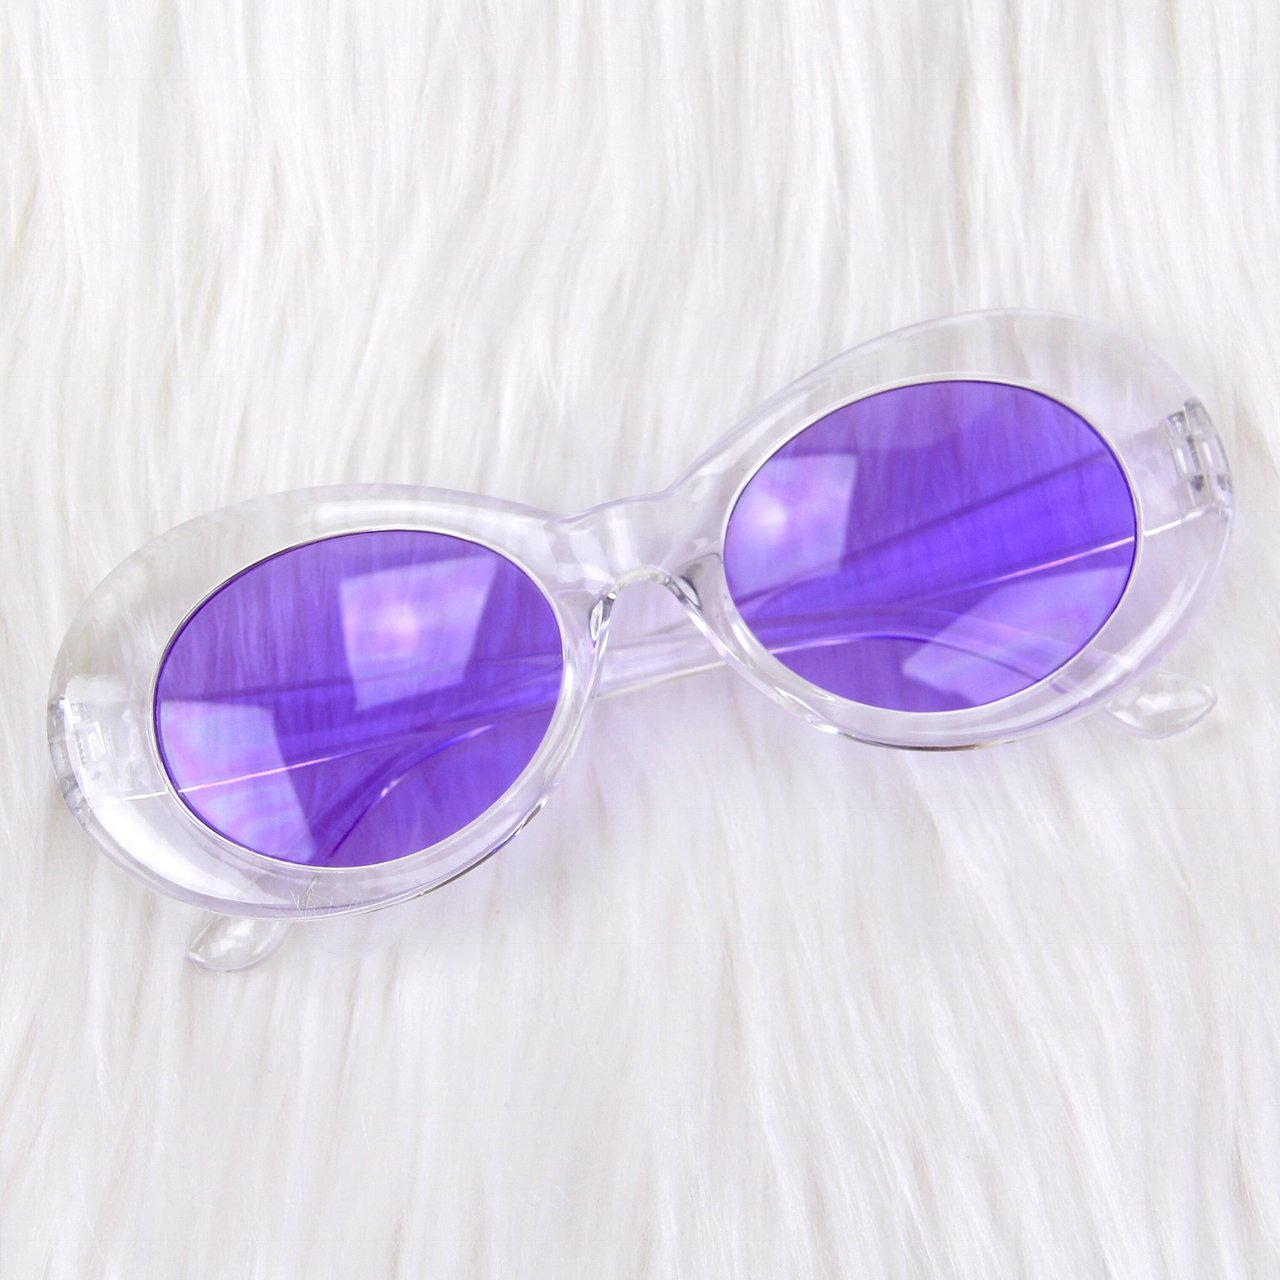 869380c7fb6 Crystal Clear Jelly Clout Goggles with purple tinted lenses - Depop